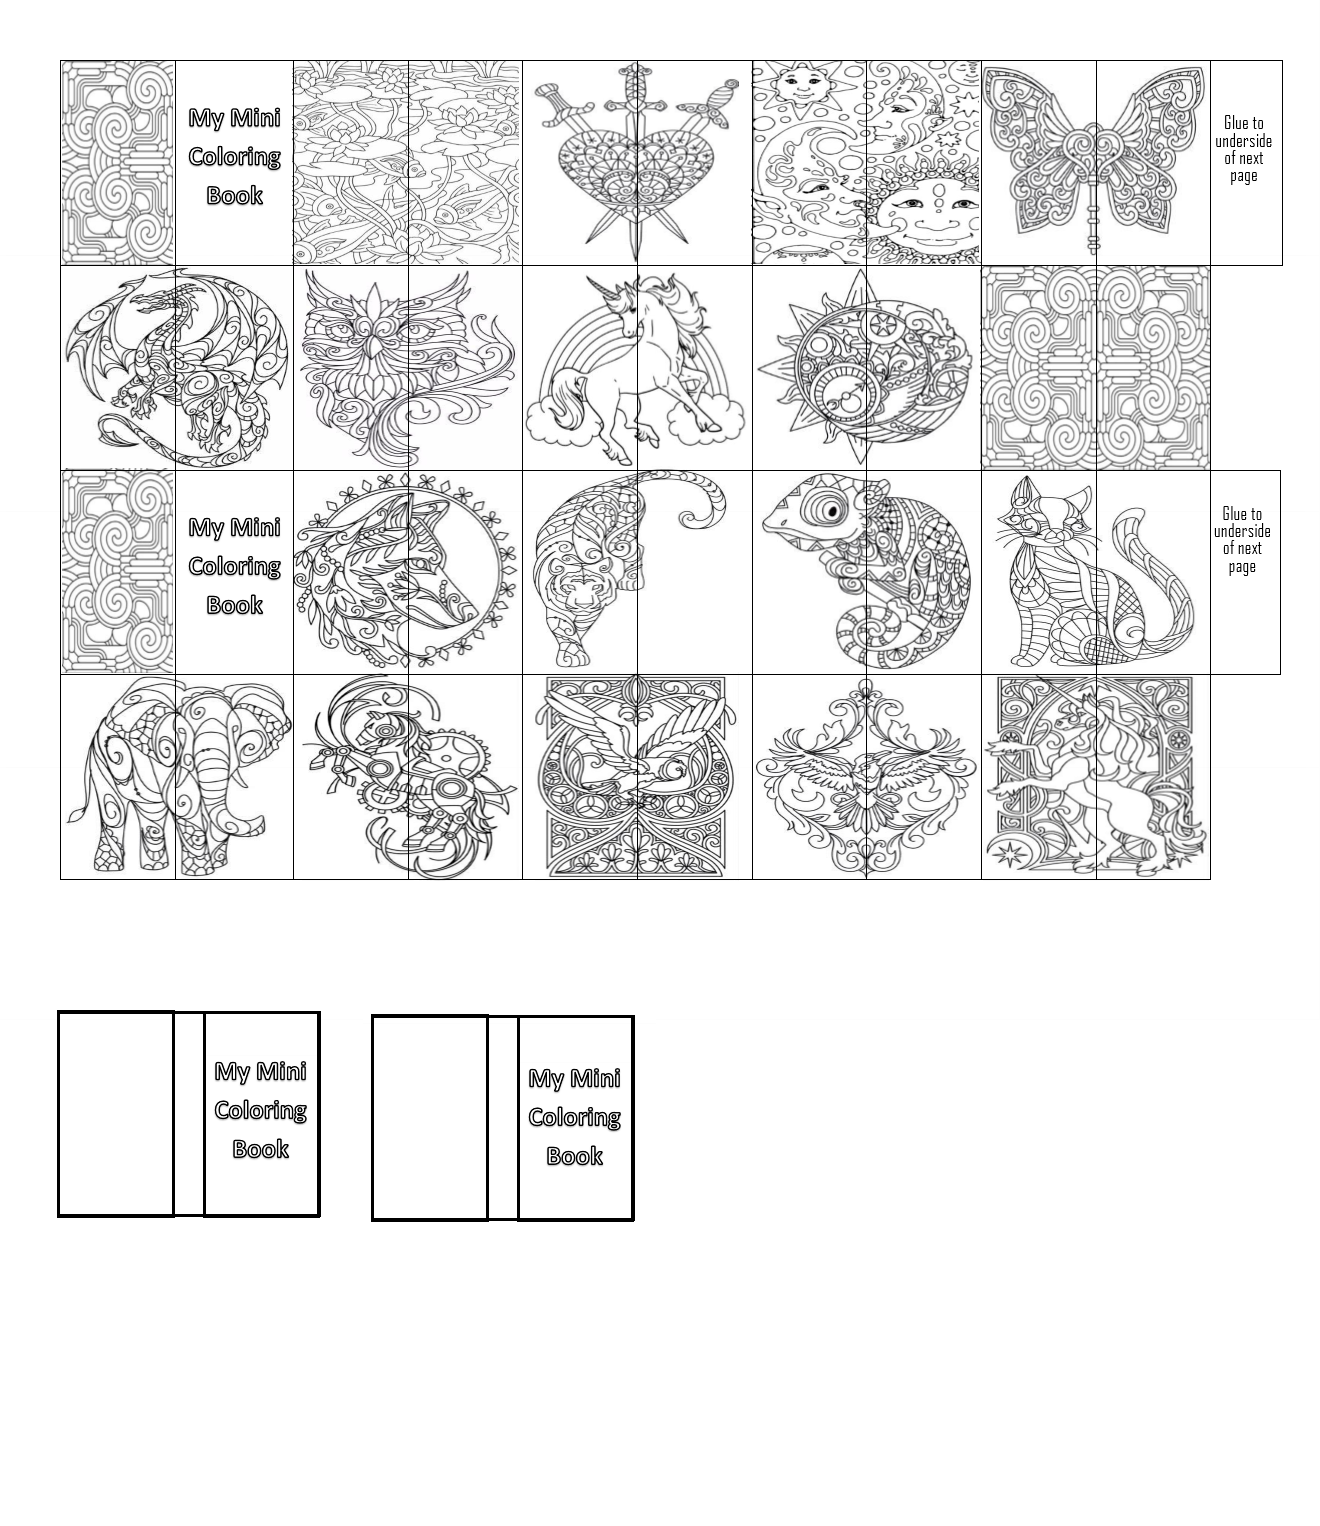 mini books coloring pages - photo#36